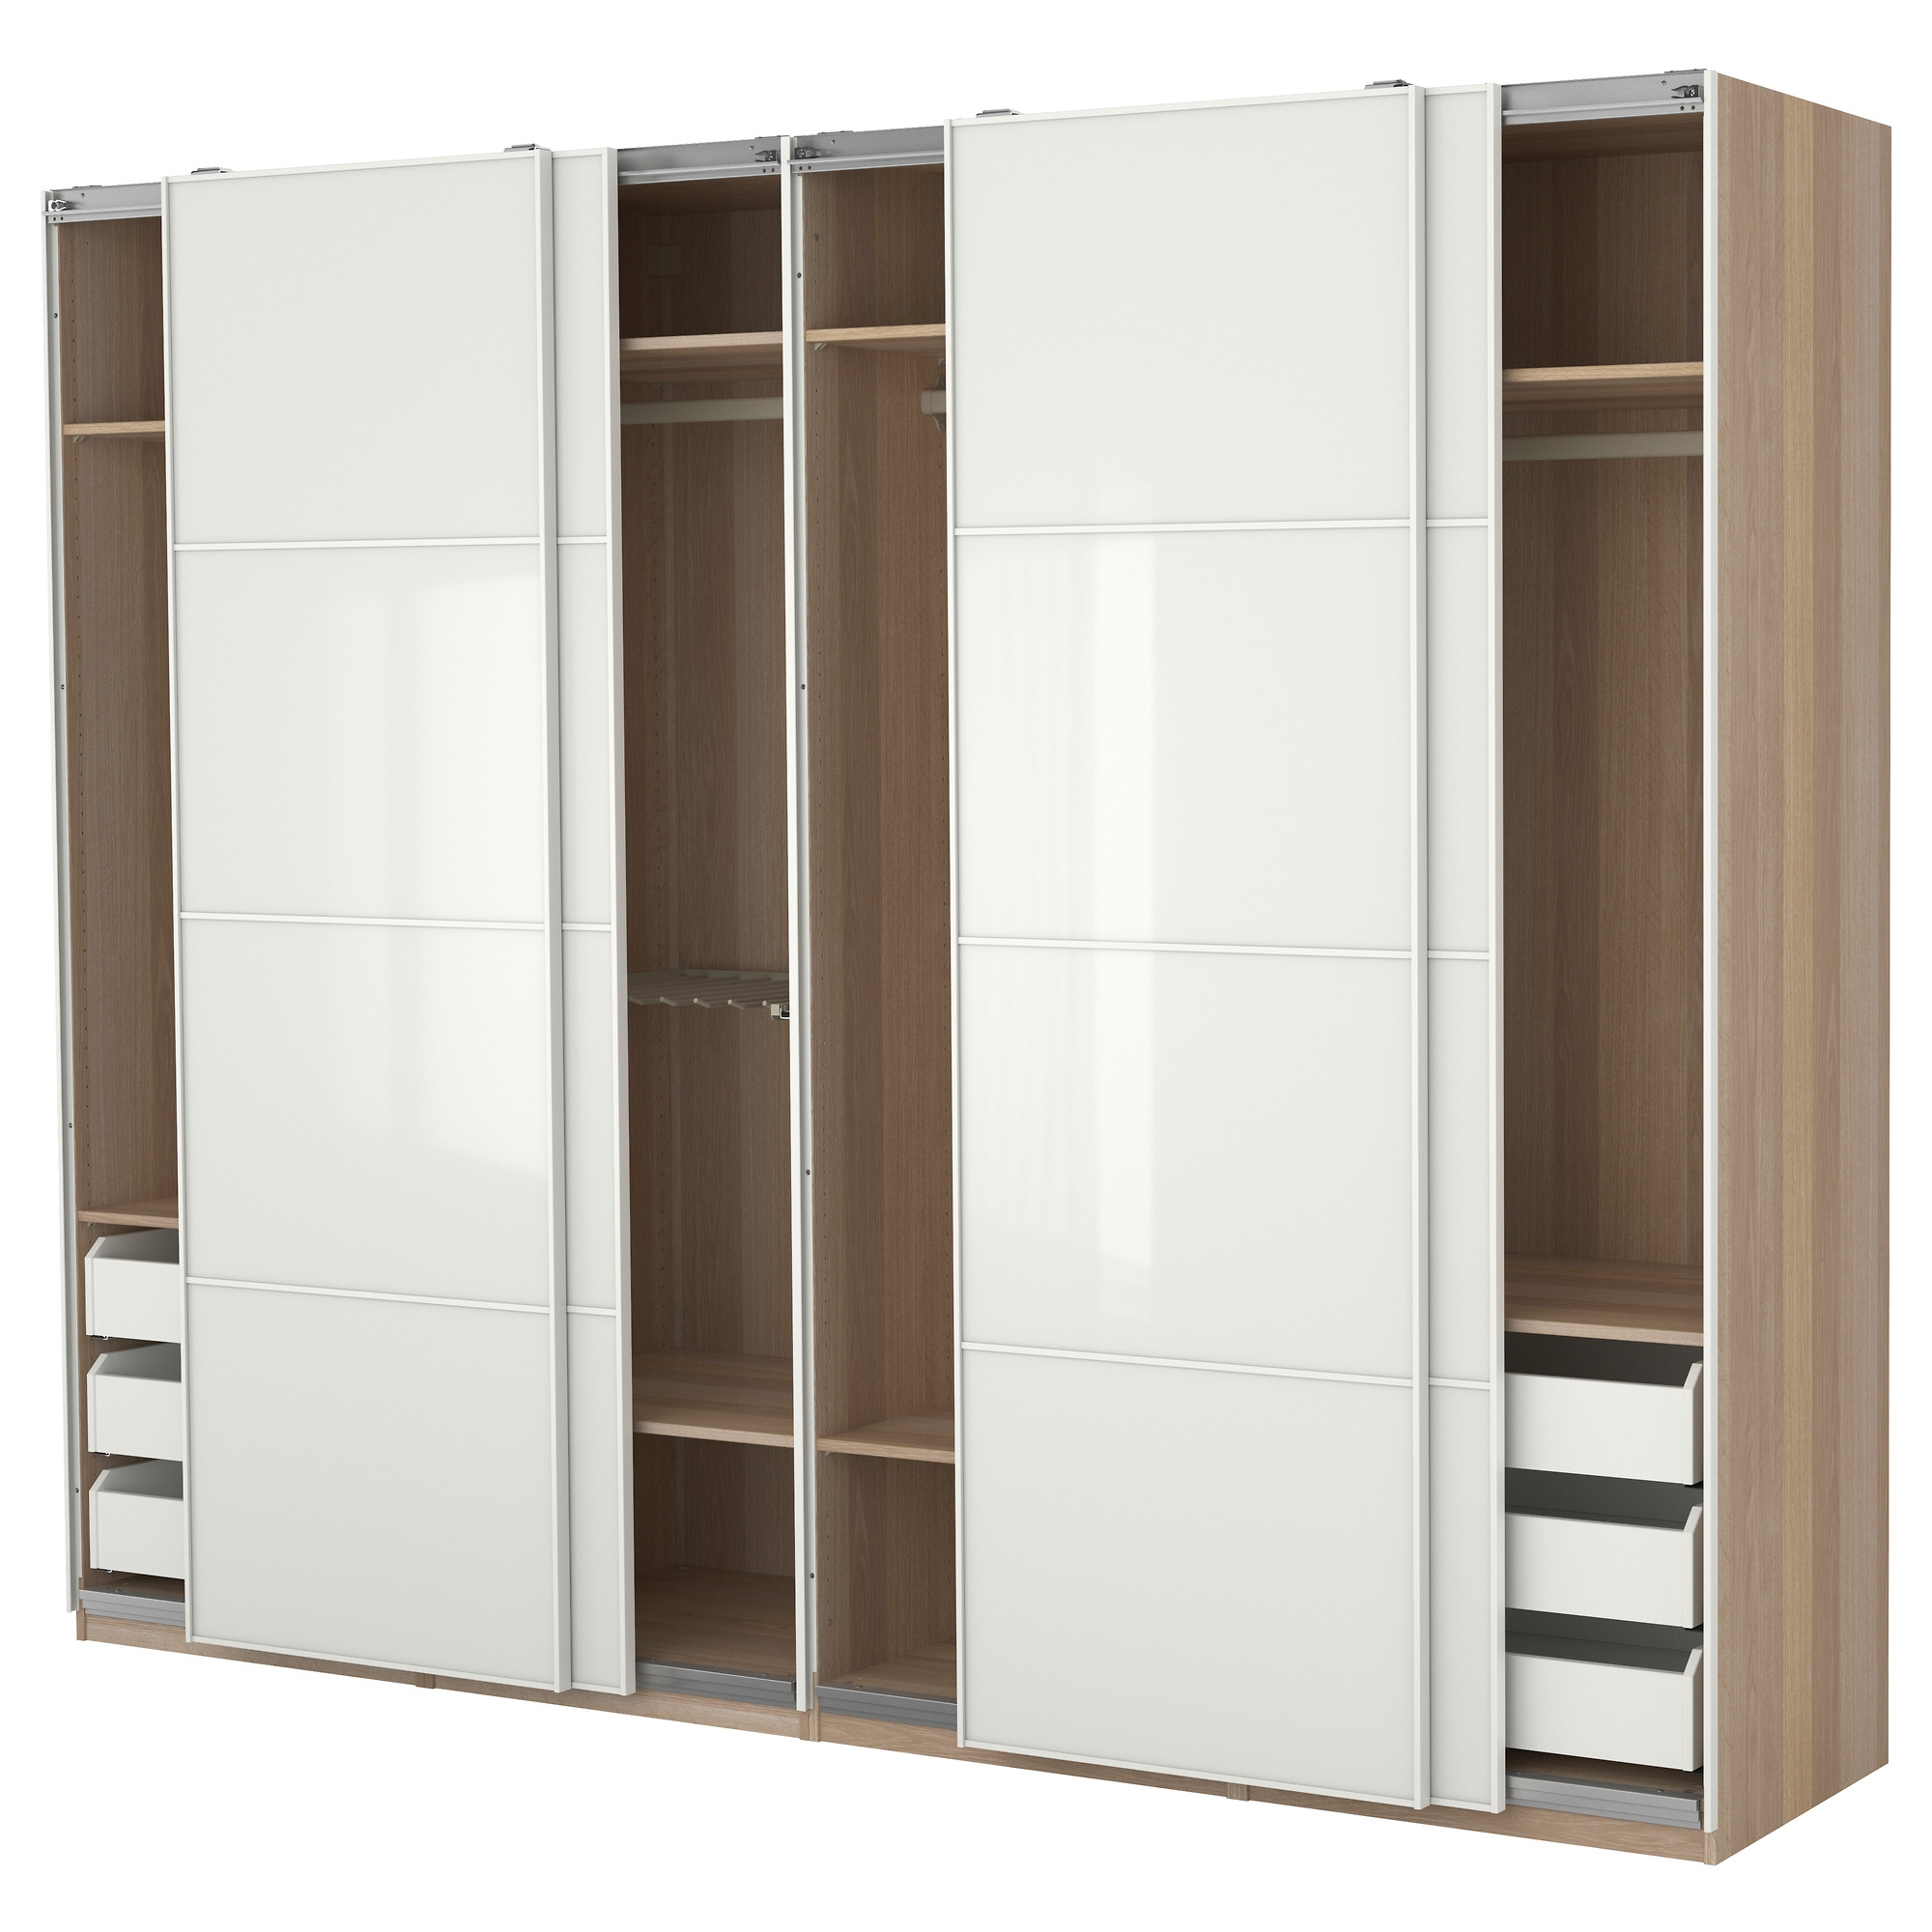 Solid Wooden Wardrobe Closets ~ Ideas of solid wood built in wardrobes